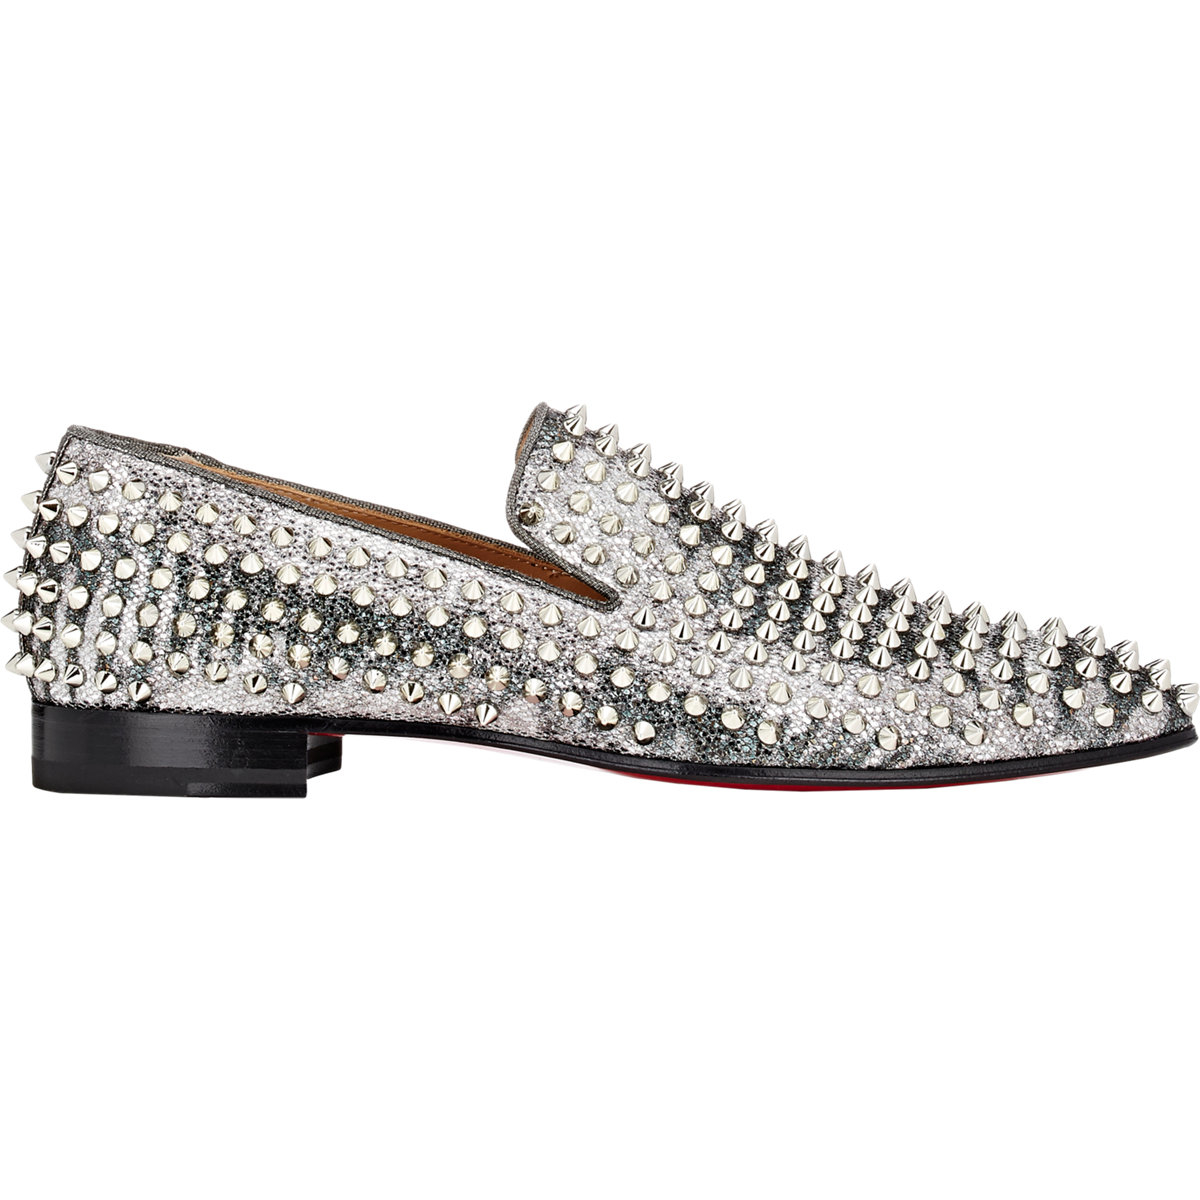 04389cc144bf Christian Louboutin Spiked Dandelion Loafers in Metallic for Men - Lyst